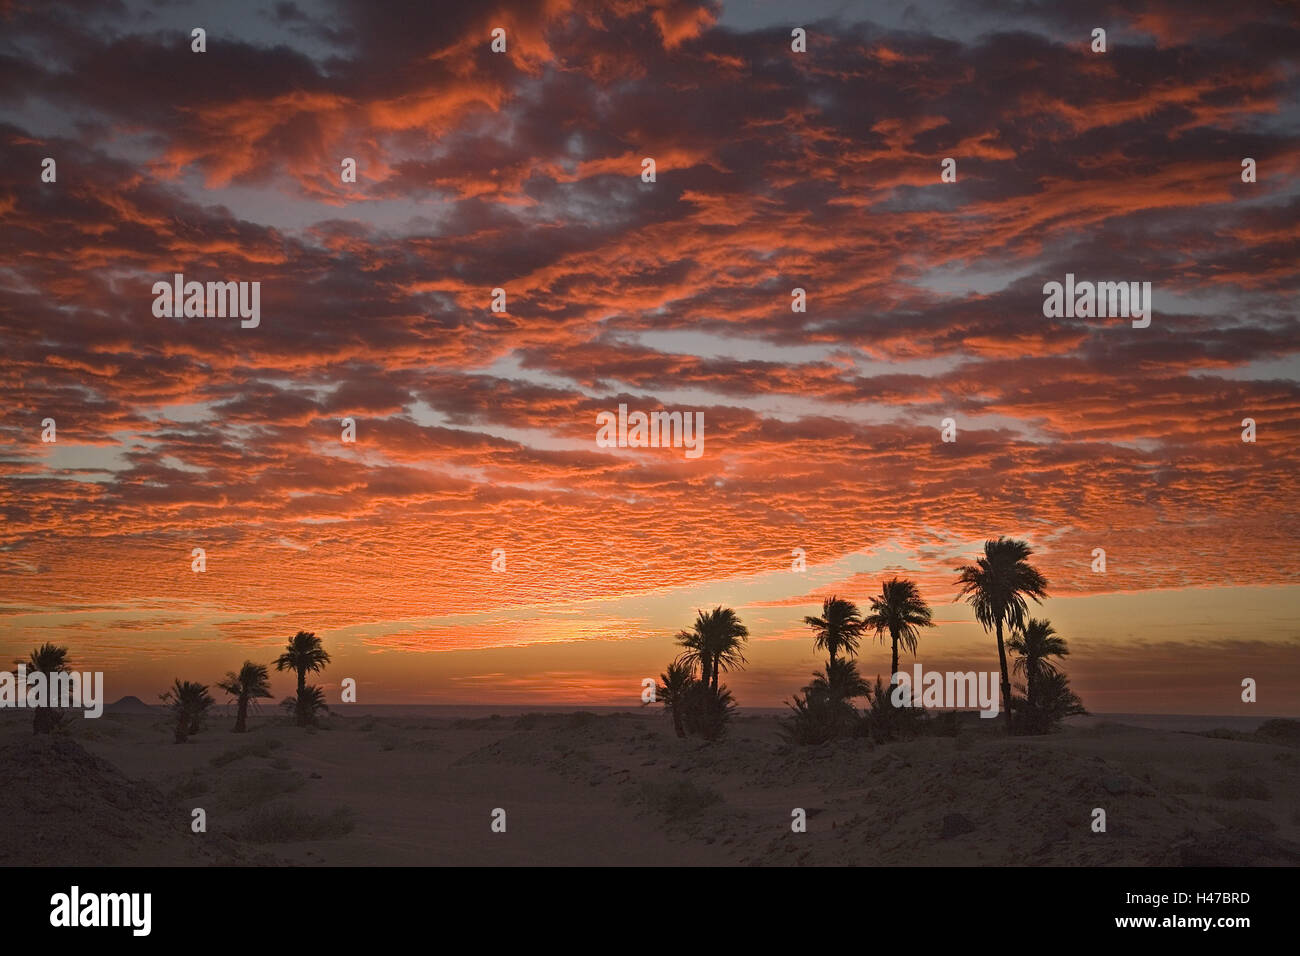 Algeria, Timimoun, desert, palms, heavens, clouds, red sky, Africa, North, Africa, scenery, nature, vegetation, - Stock Image